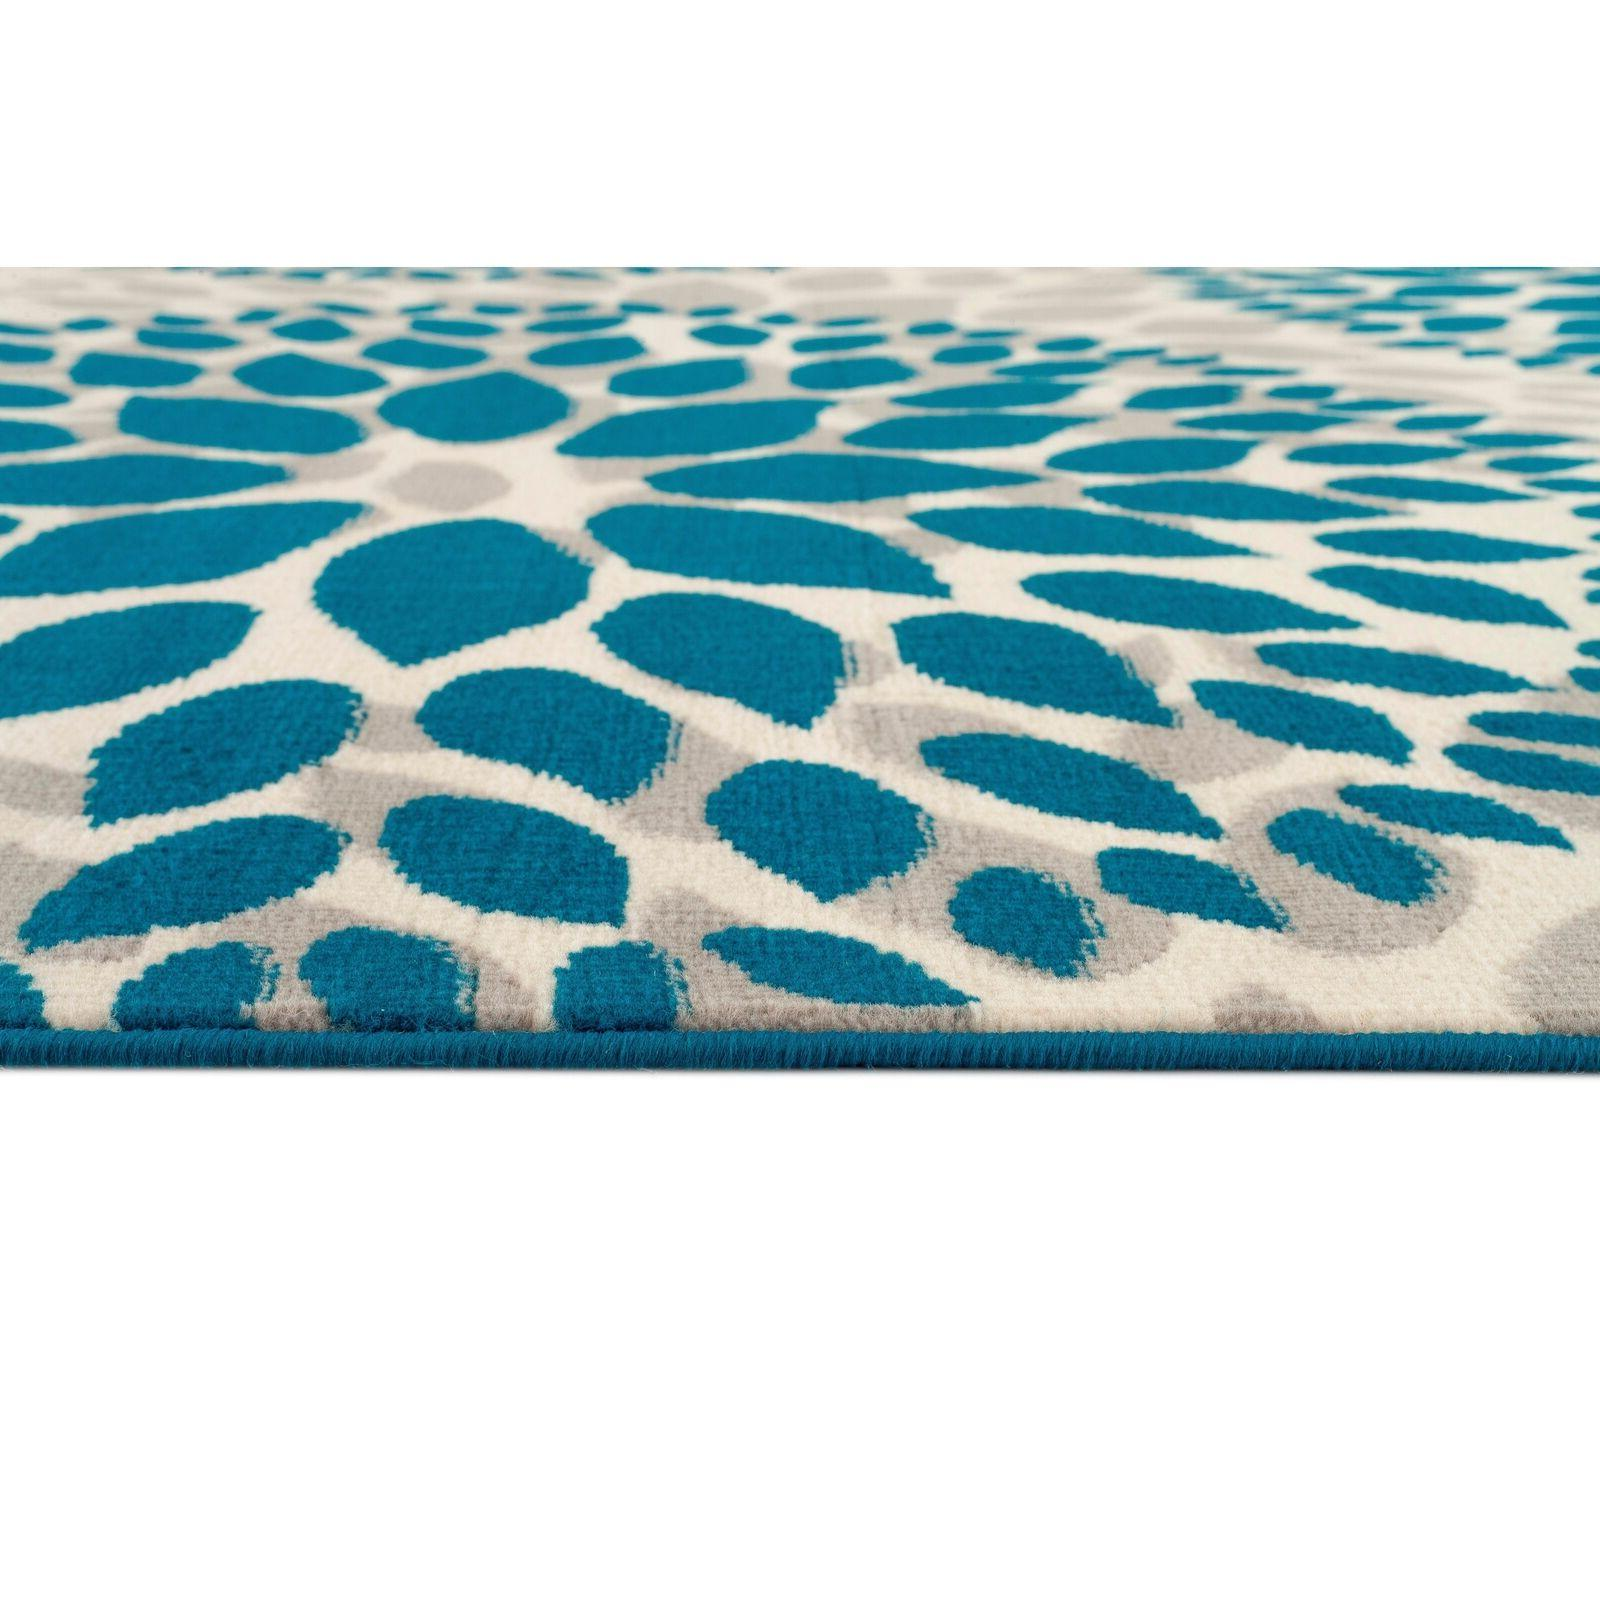 Throw Rug Floral Room Hall Entry Mat